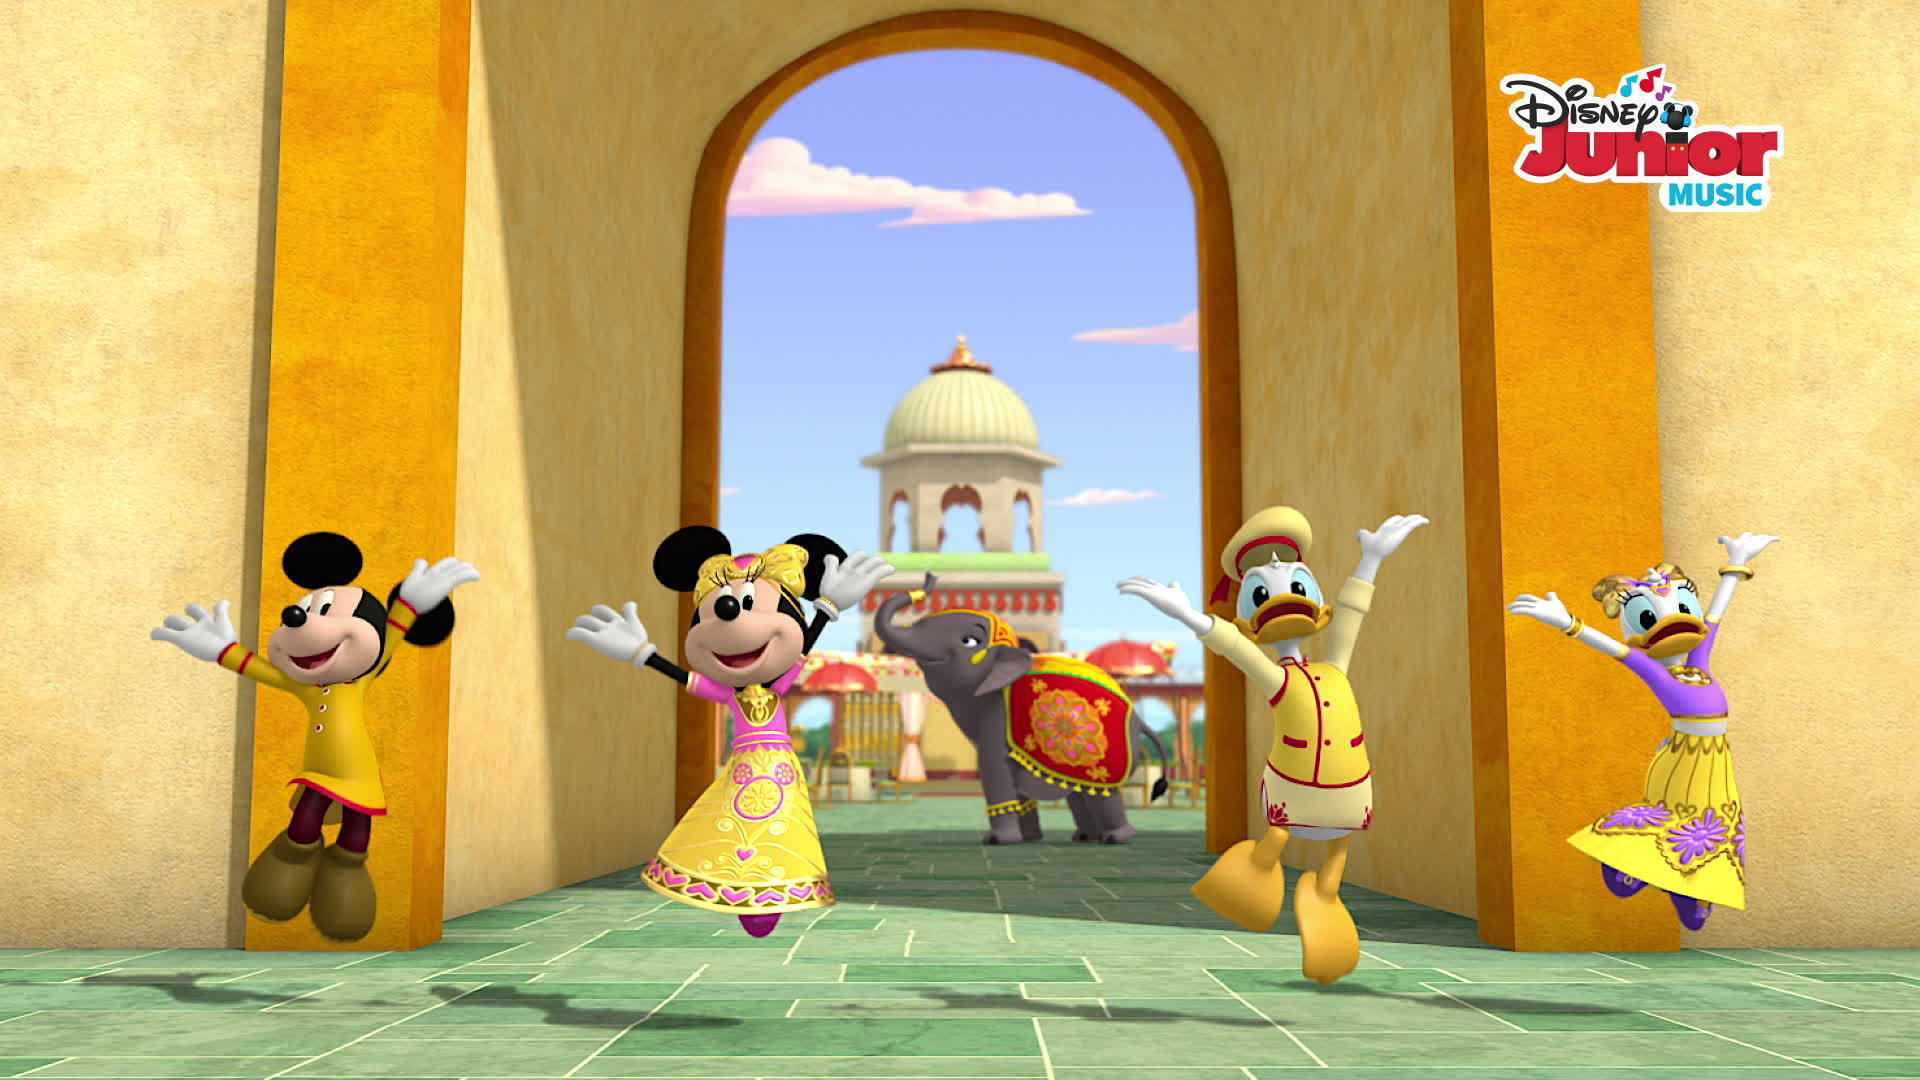 Mickey Mouse: Mixed-Up Adventures Theme Song